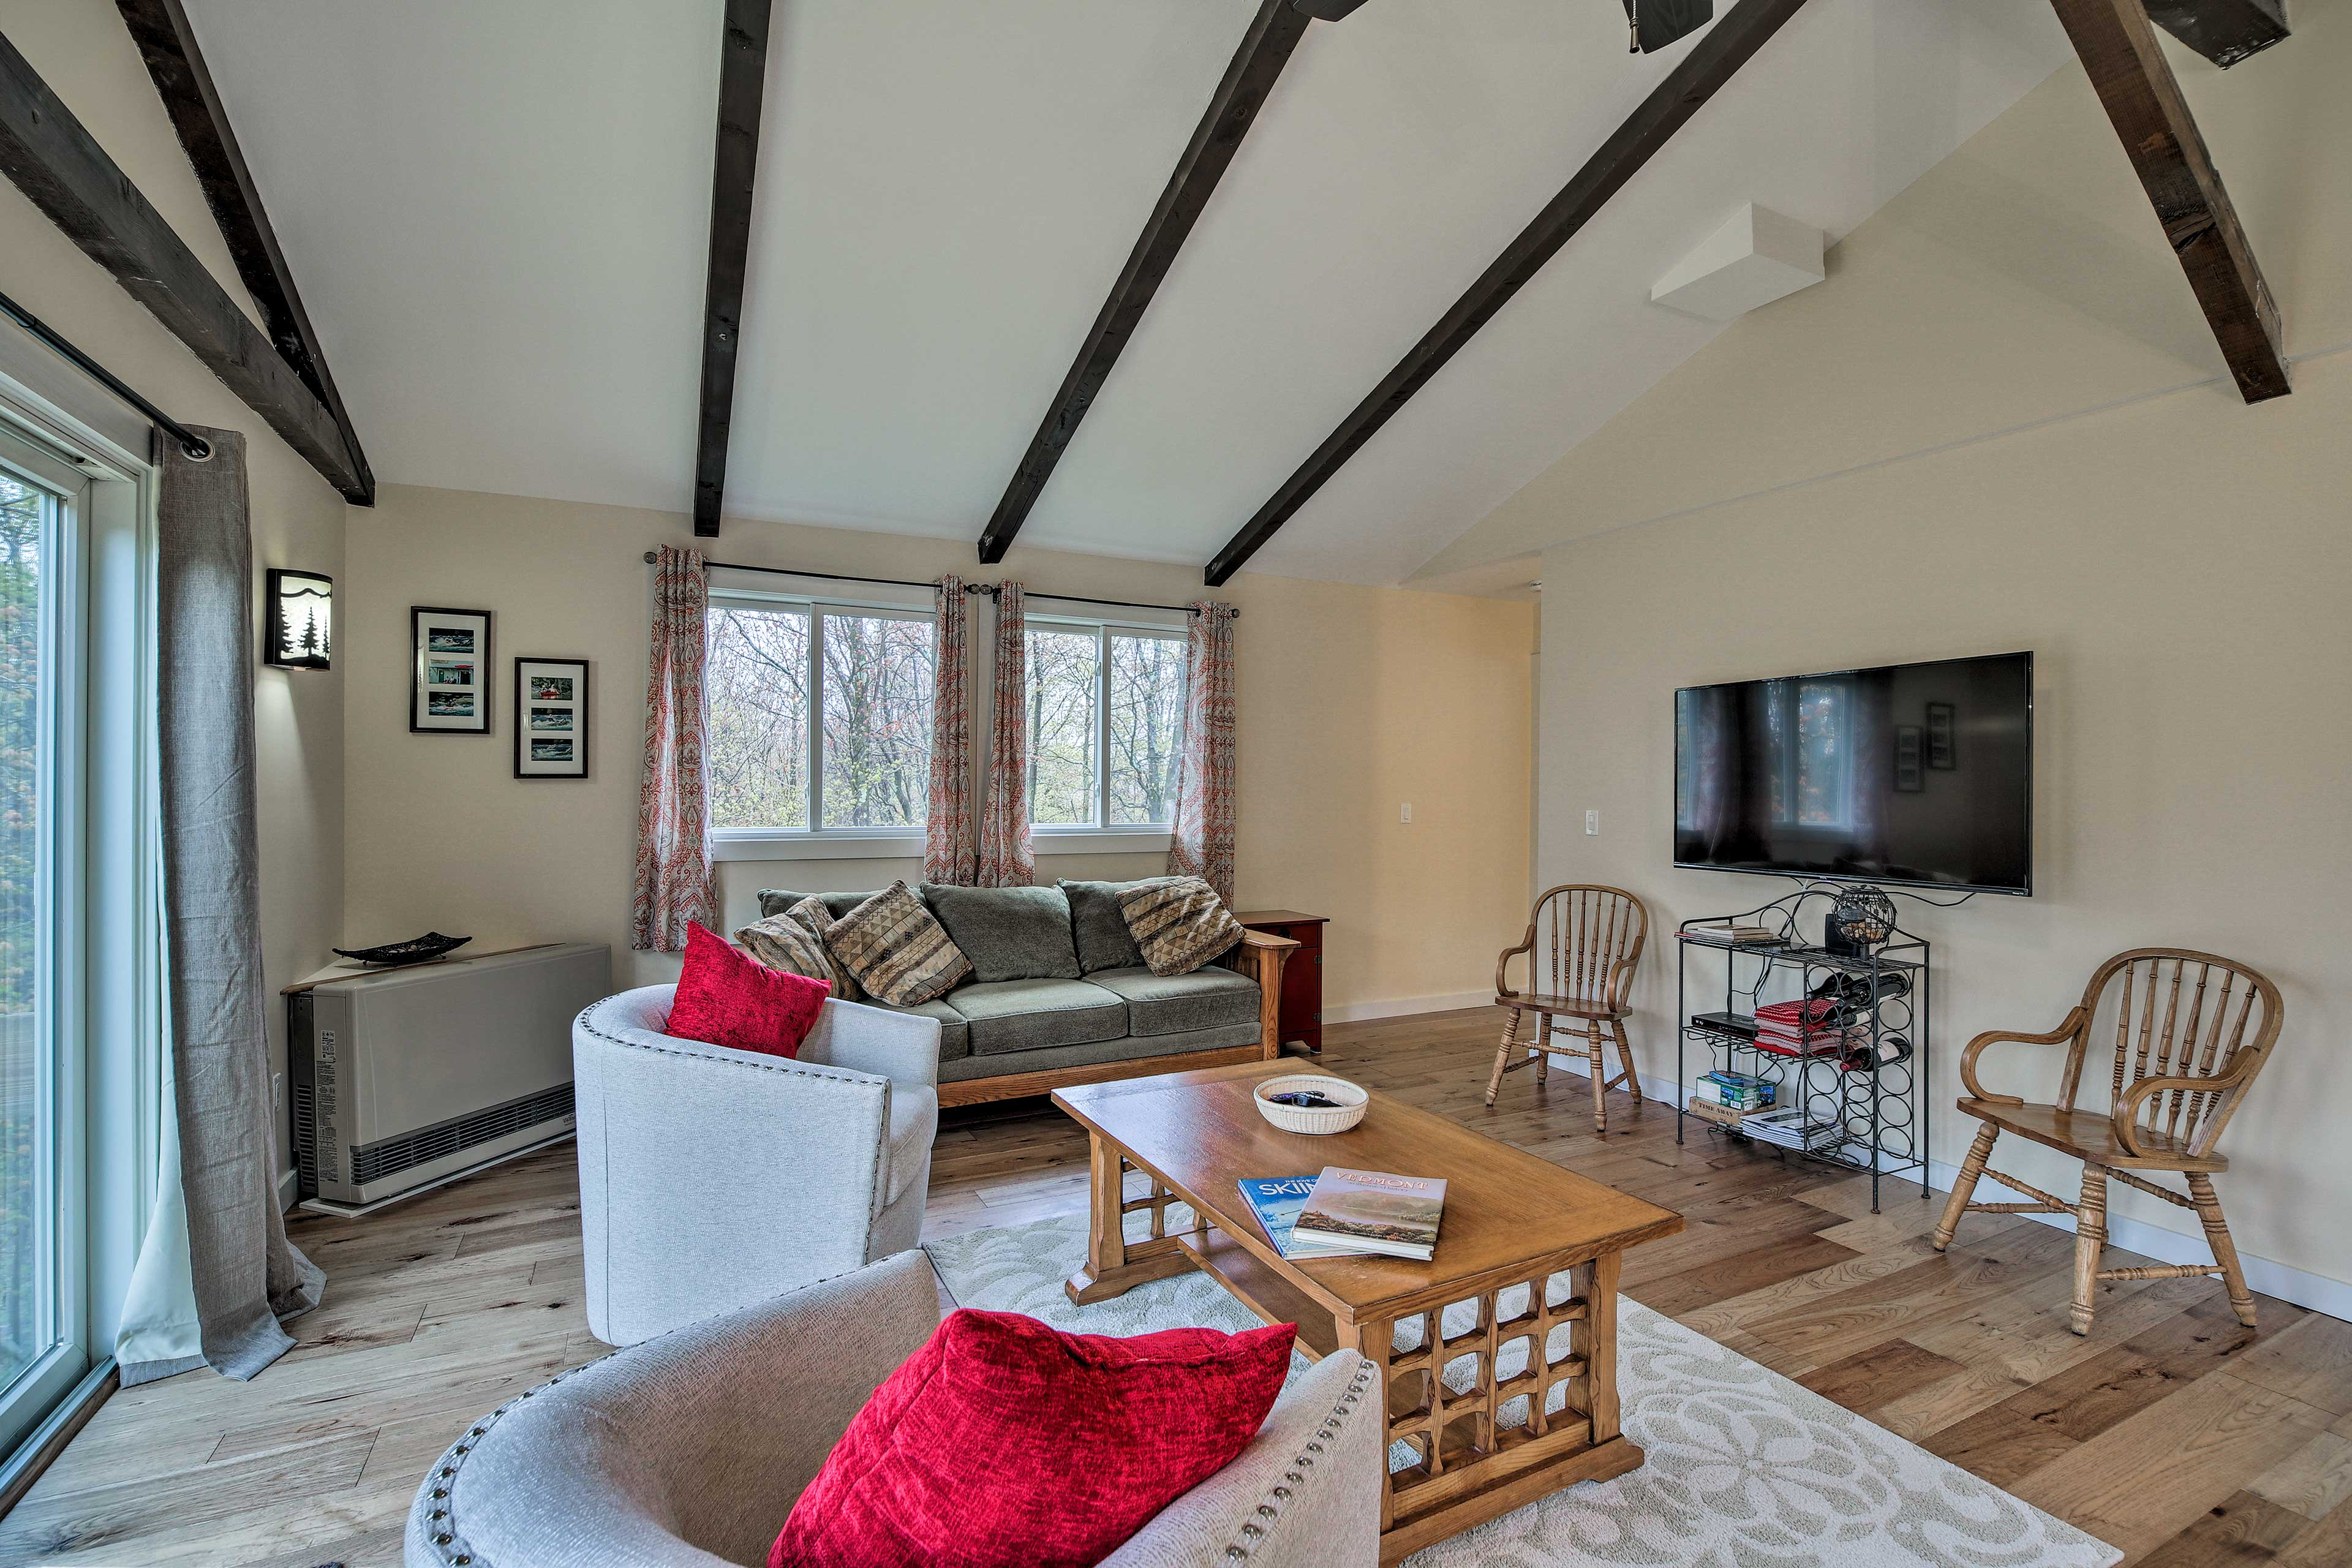 Unwind in the living room after hiking or skiing and watch TV.